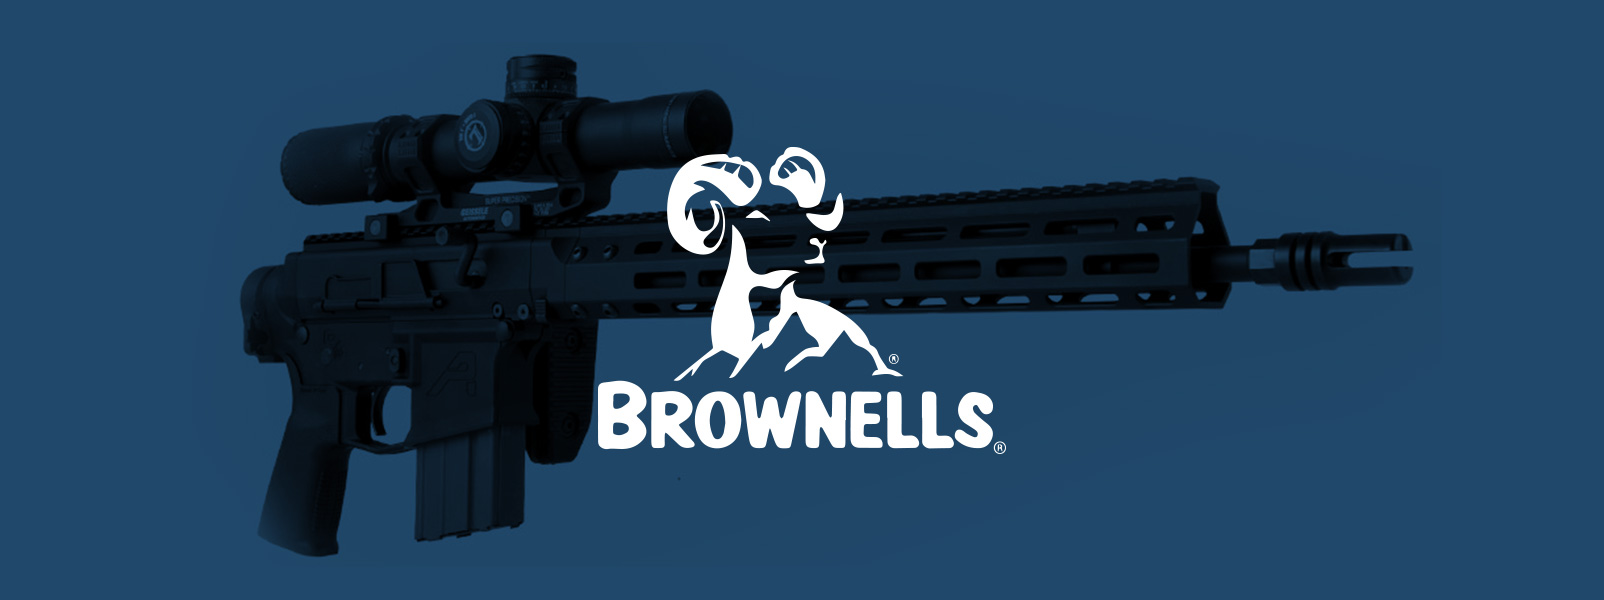 BROWNELLS BECOMES TIER 3 SPONSOR, JOINS BOARD OF ASA